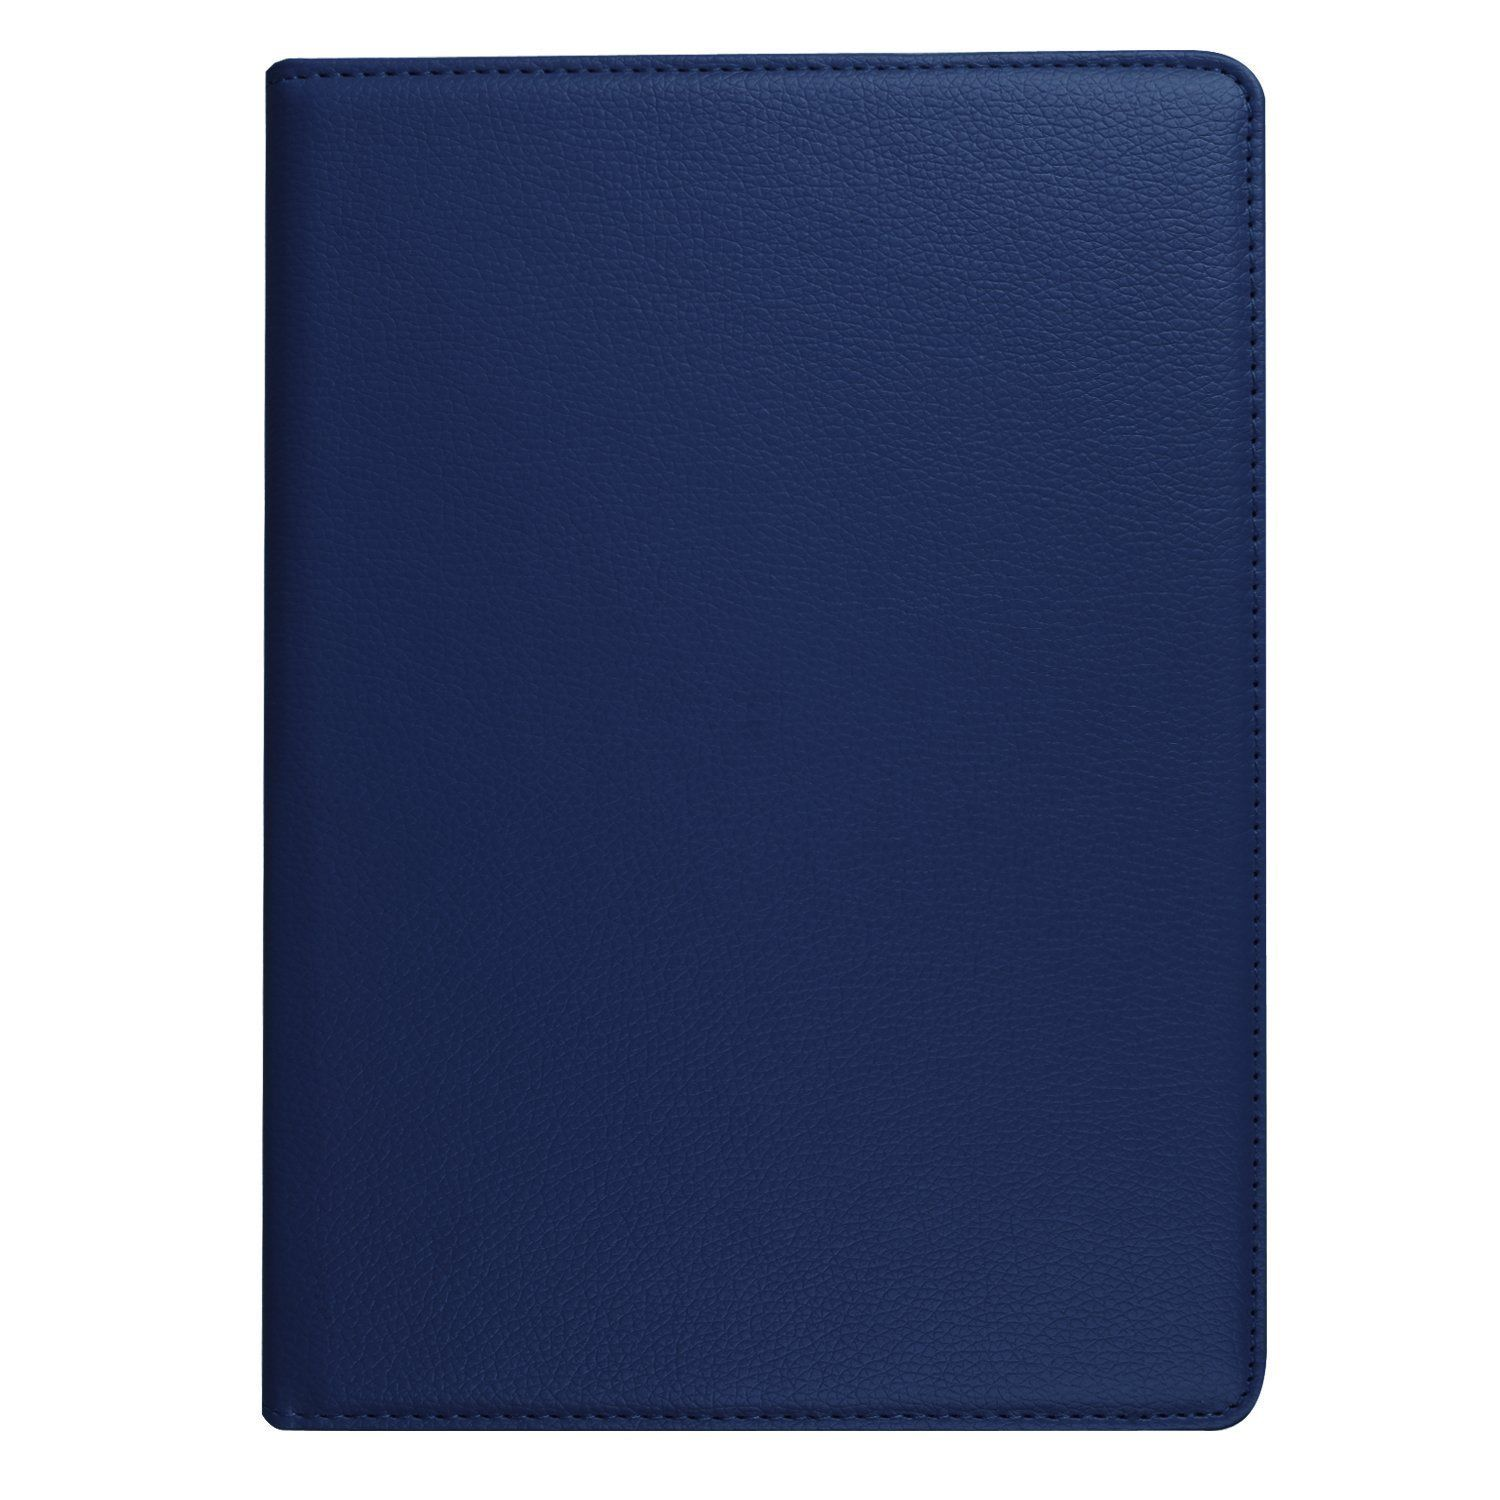 Custodia-per-Apple-iPad-Pro-2017-iPad-Air-3-10-5-Smart-Cover-Case-Custodia-Protettiva miniatura 18